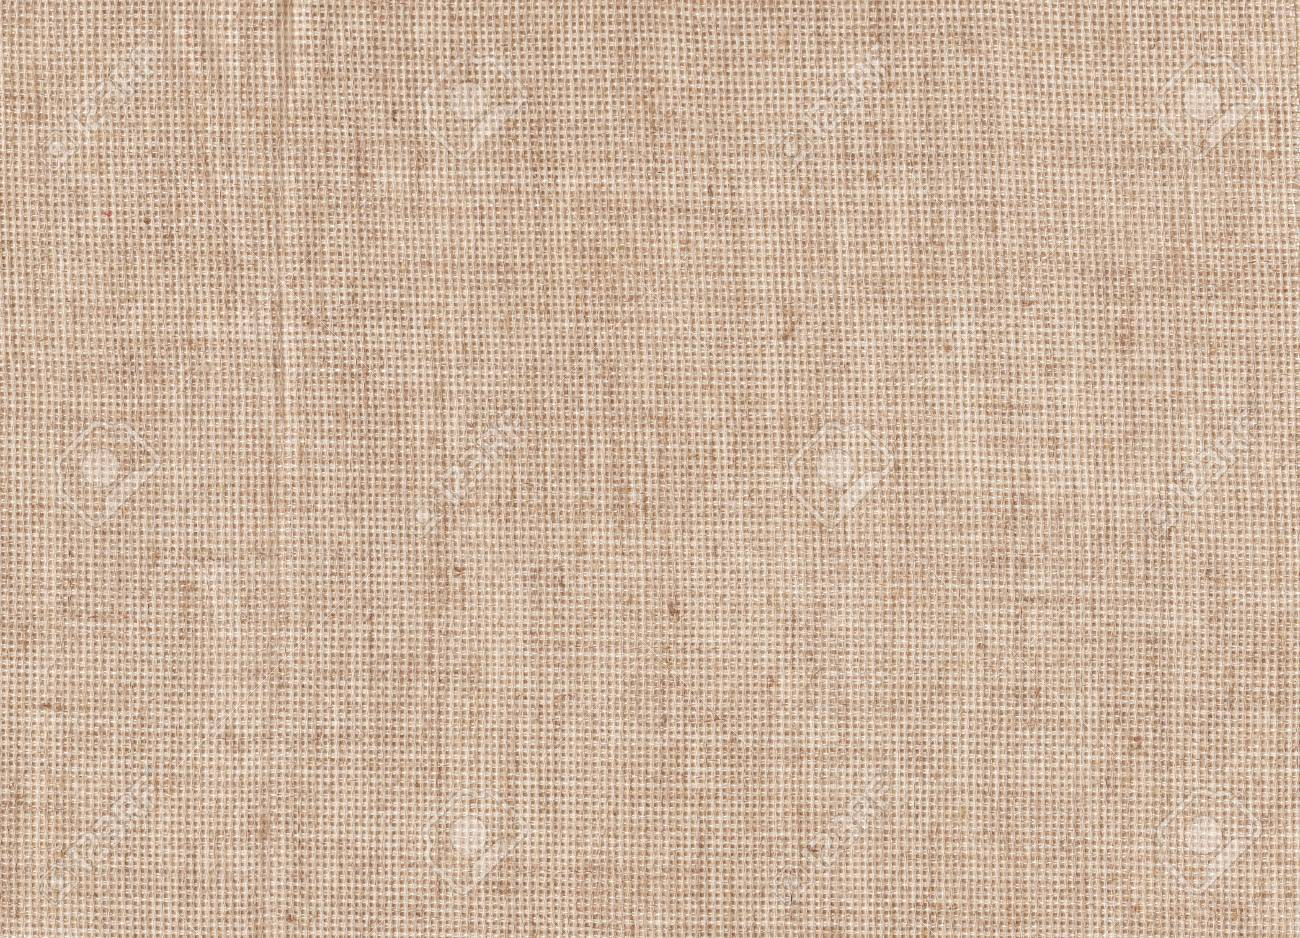 Light Natural Linen Texture Detail For The Background High Resolution Canvas Old